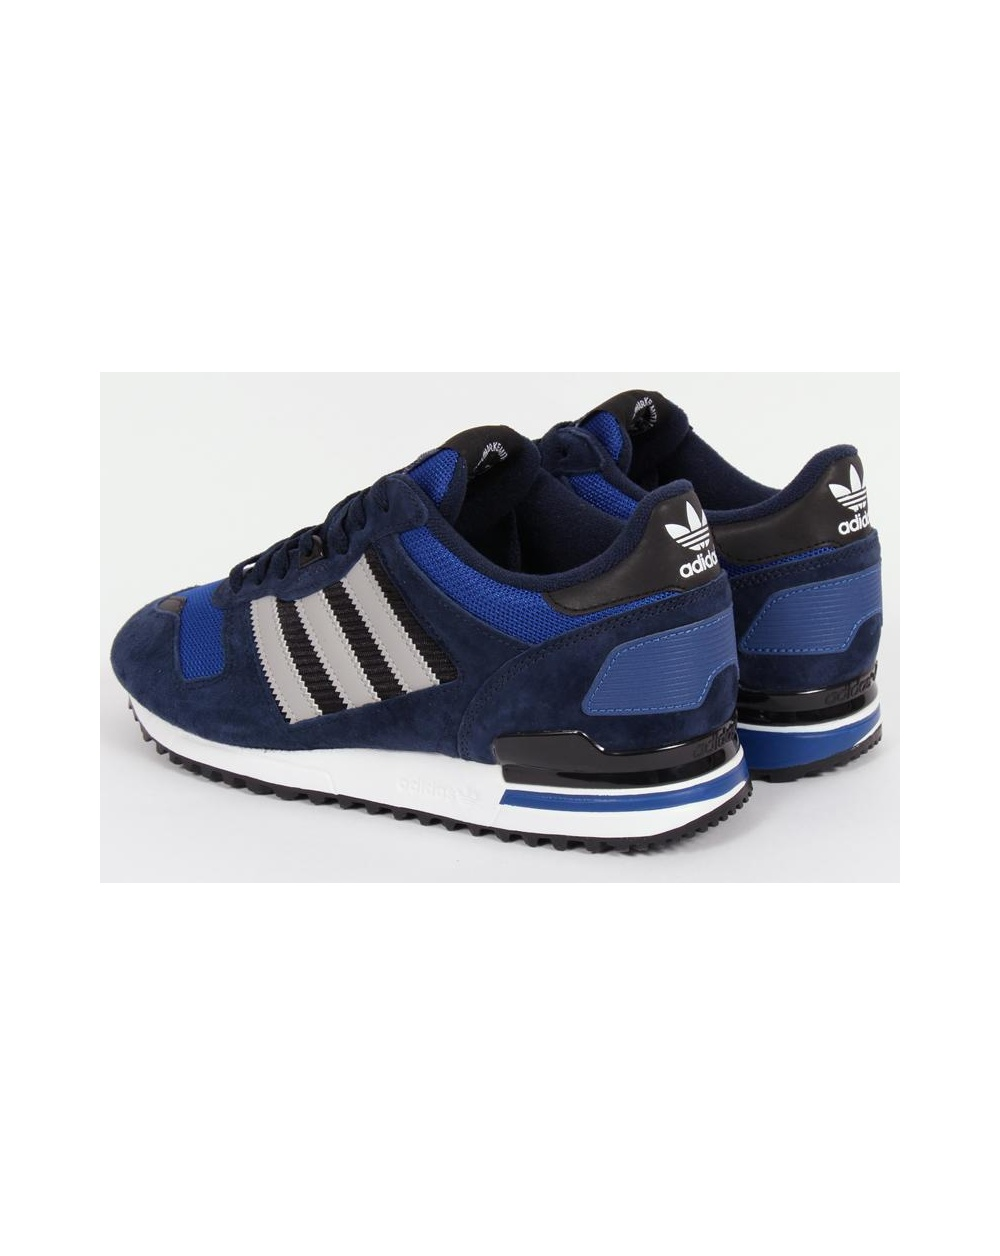 Adidas Zx 700 Trainers Navy, Originals, ZX 700 shoes